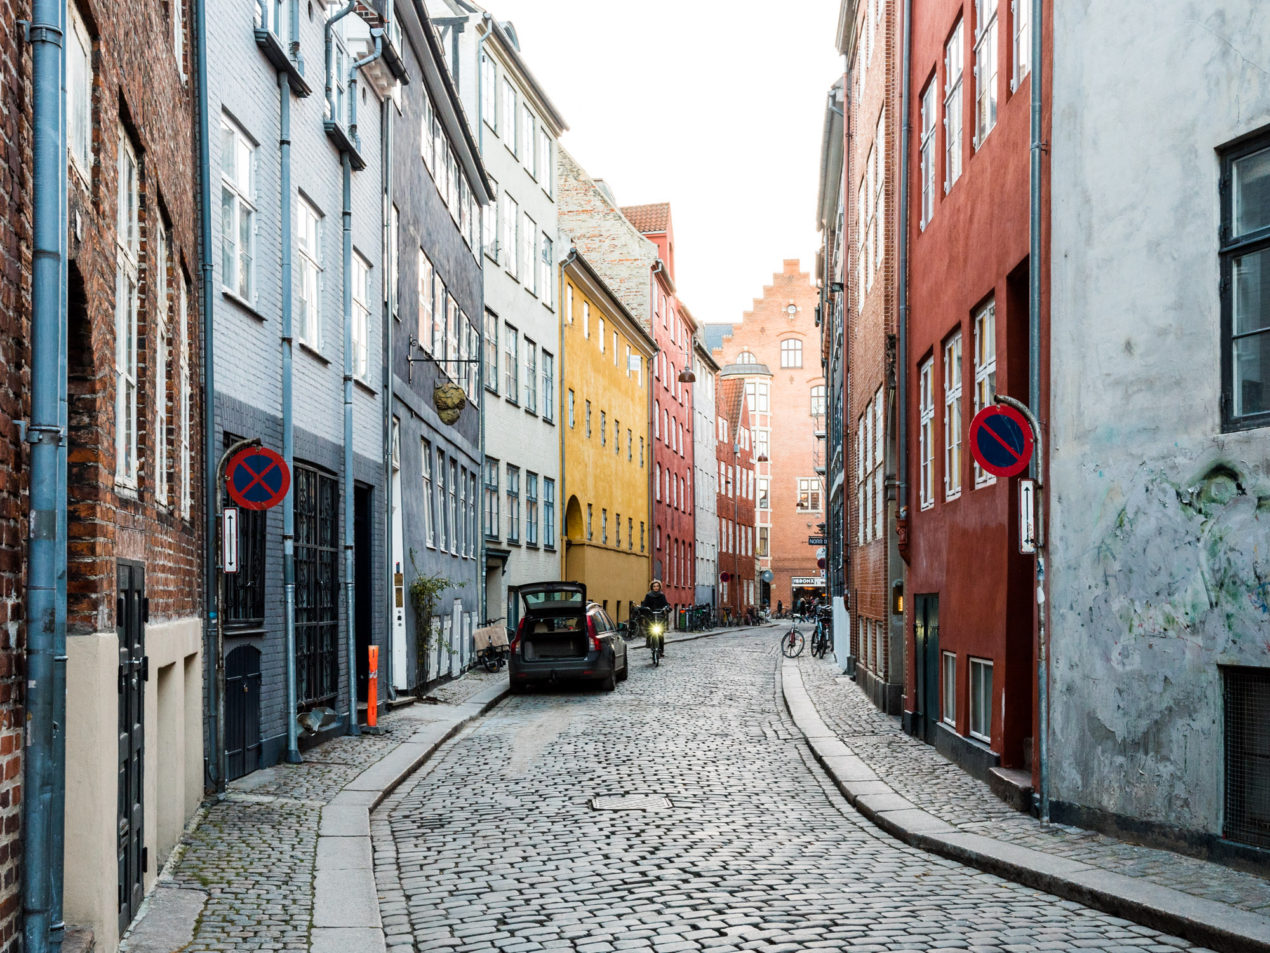 Jeff On The Road - Travel - Things to do in Copenhagen - All photos are under Copyright  © 2017 Jeff Frenette Photography / dezjeff. To use the photos, please contact me at dezjeff@me.com.